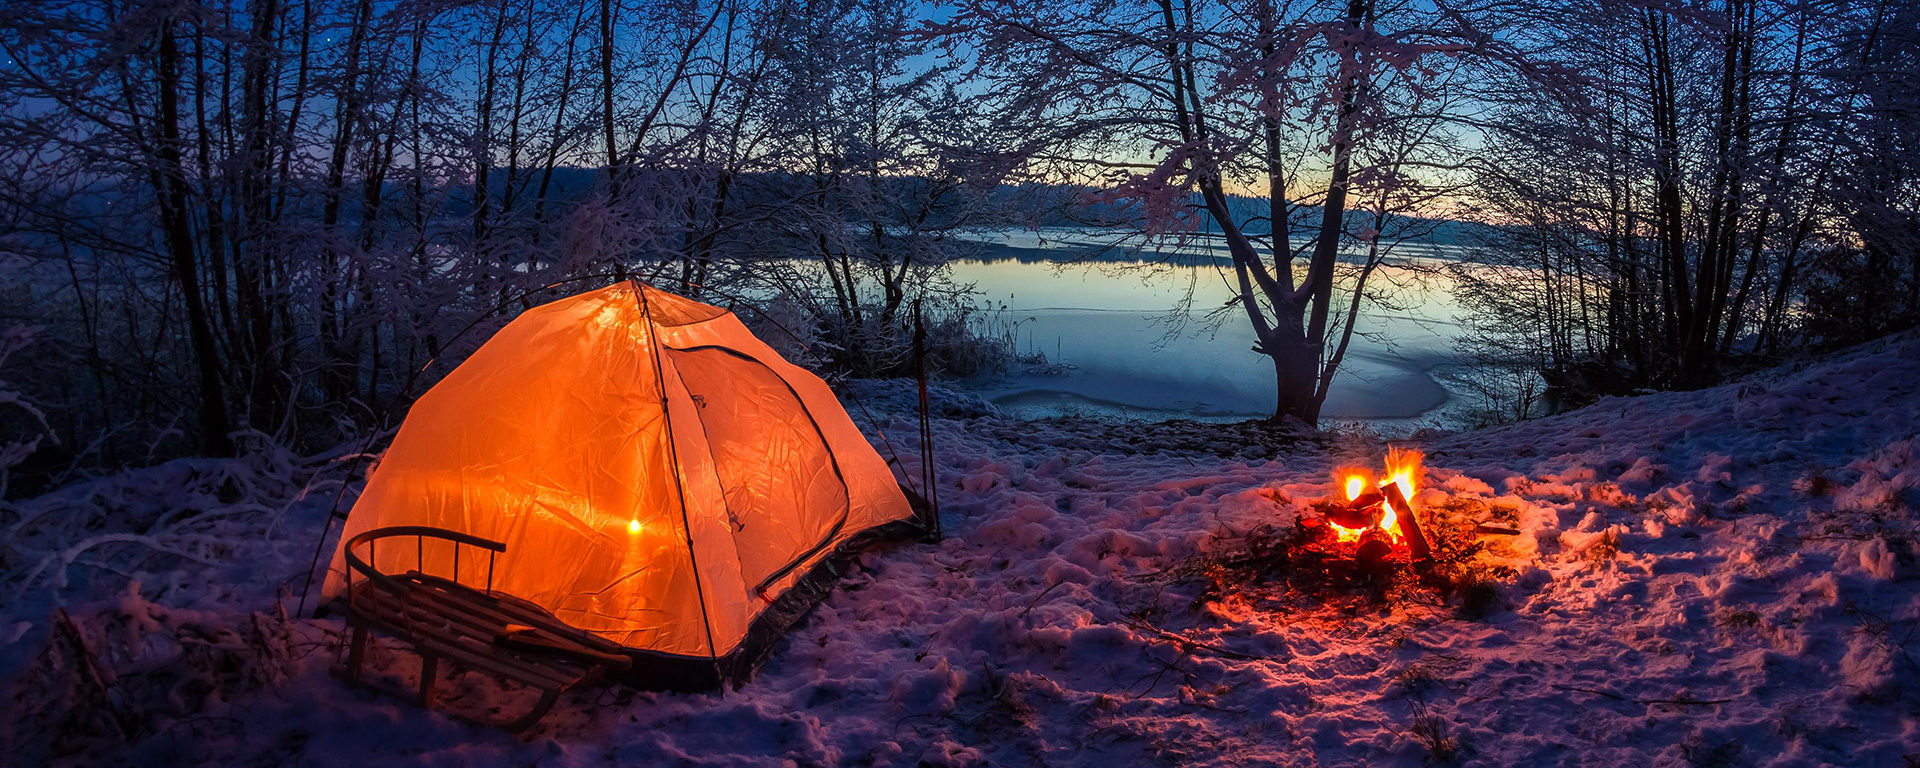 wilderness camping